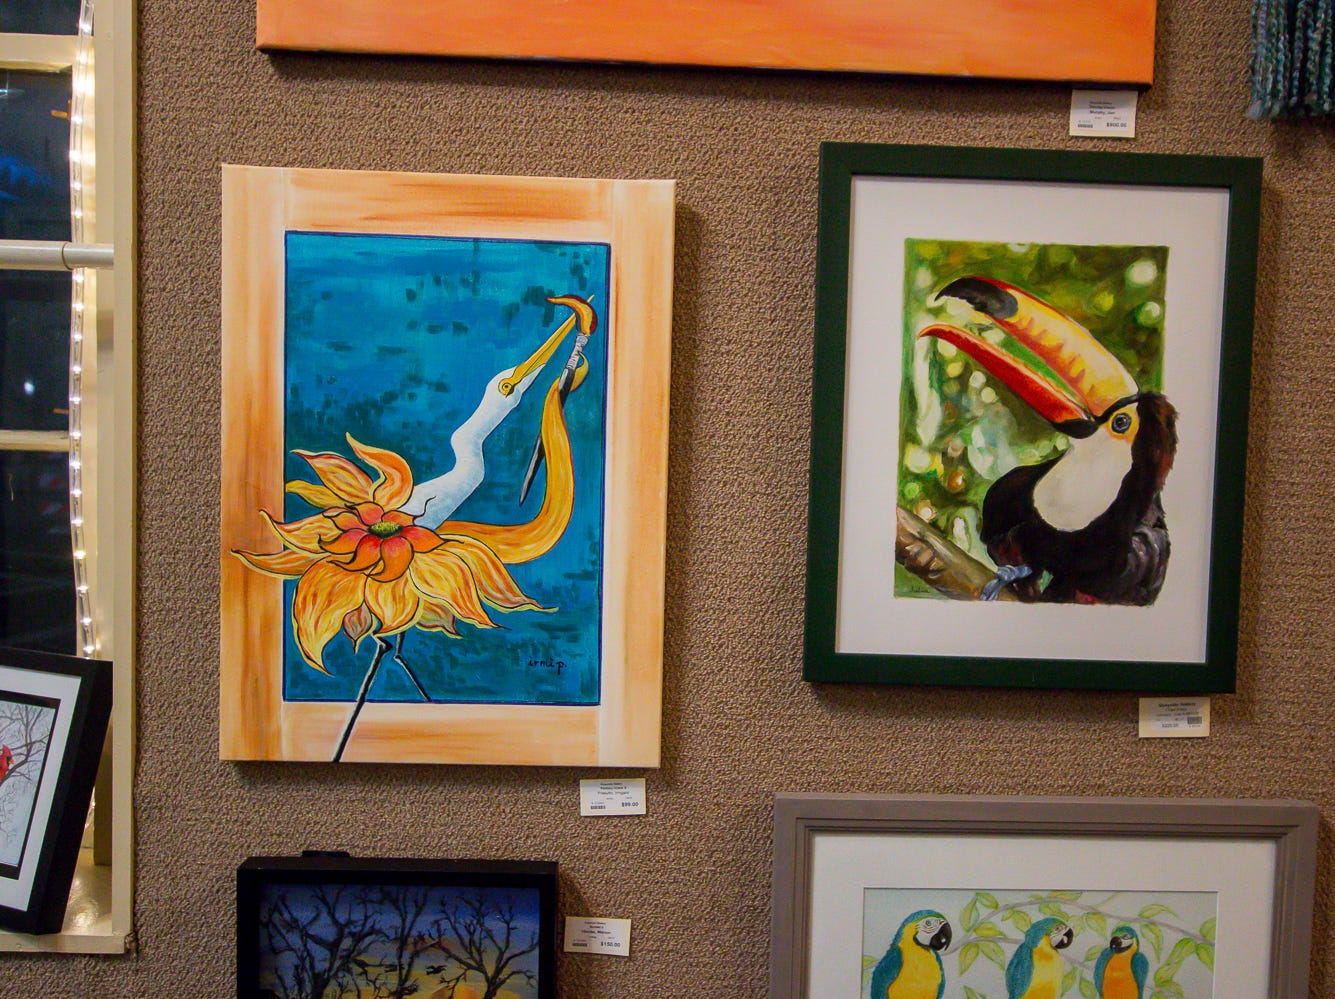 Some of the pieces on display at Quayside Art Gallery during Gallery Night on Friday, February 22, 2019.